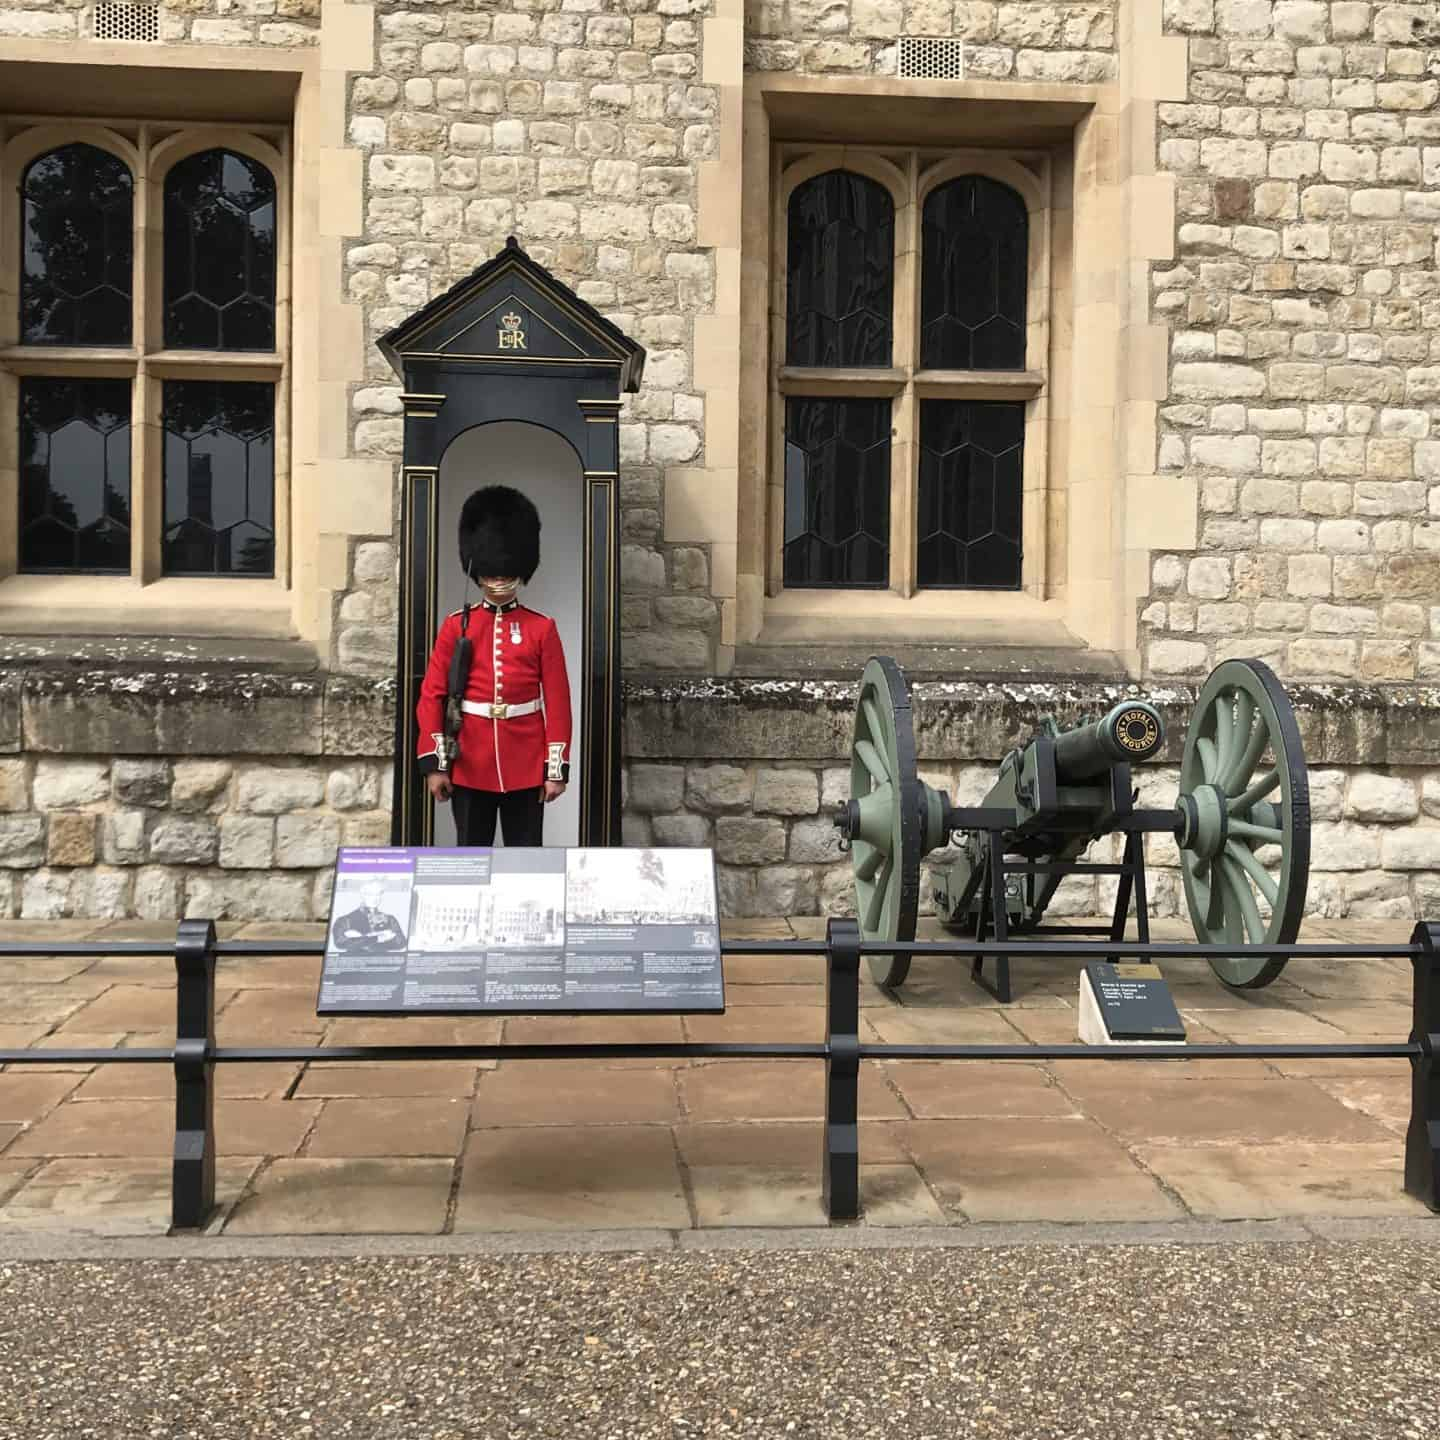 At the Tower of London